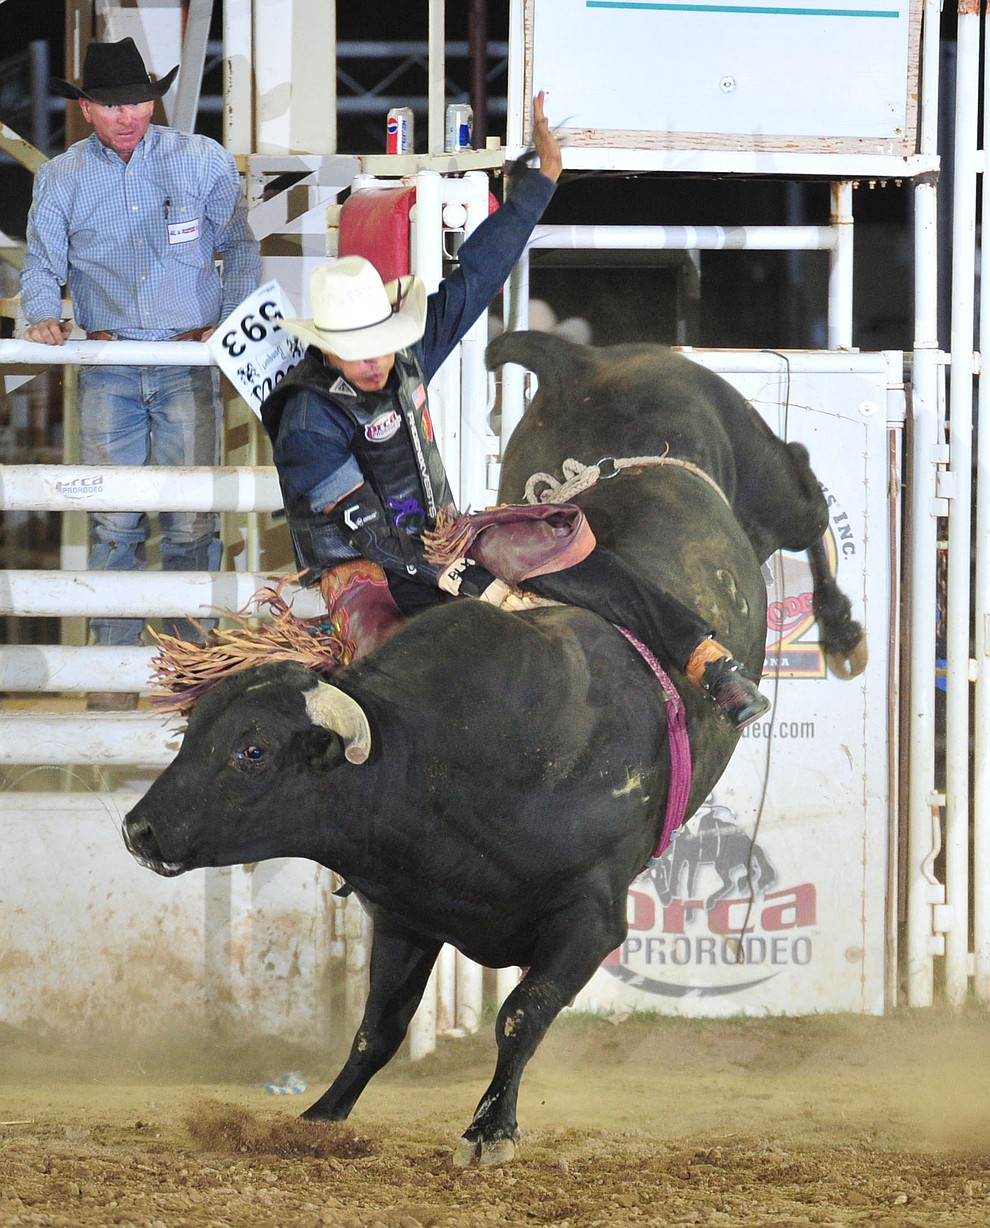 Dugan Black gets off center on Ferdinand in the bull riding during the 5th performance of the Prescott Frontier Days Rodeo Sunday, July 1, 2018. (Les Stukenberg/Courier)